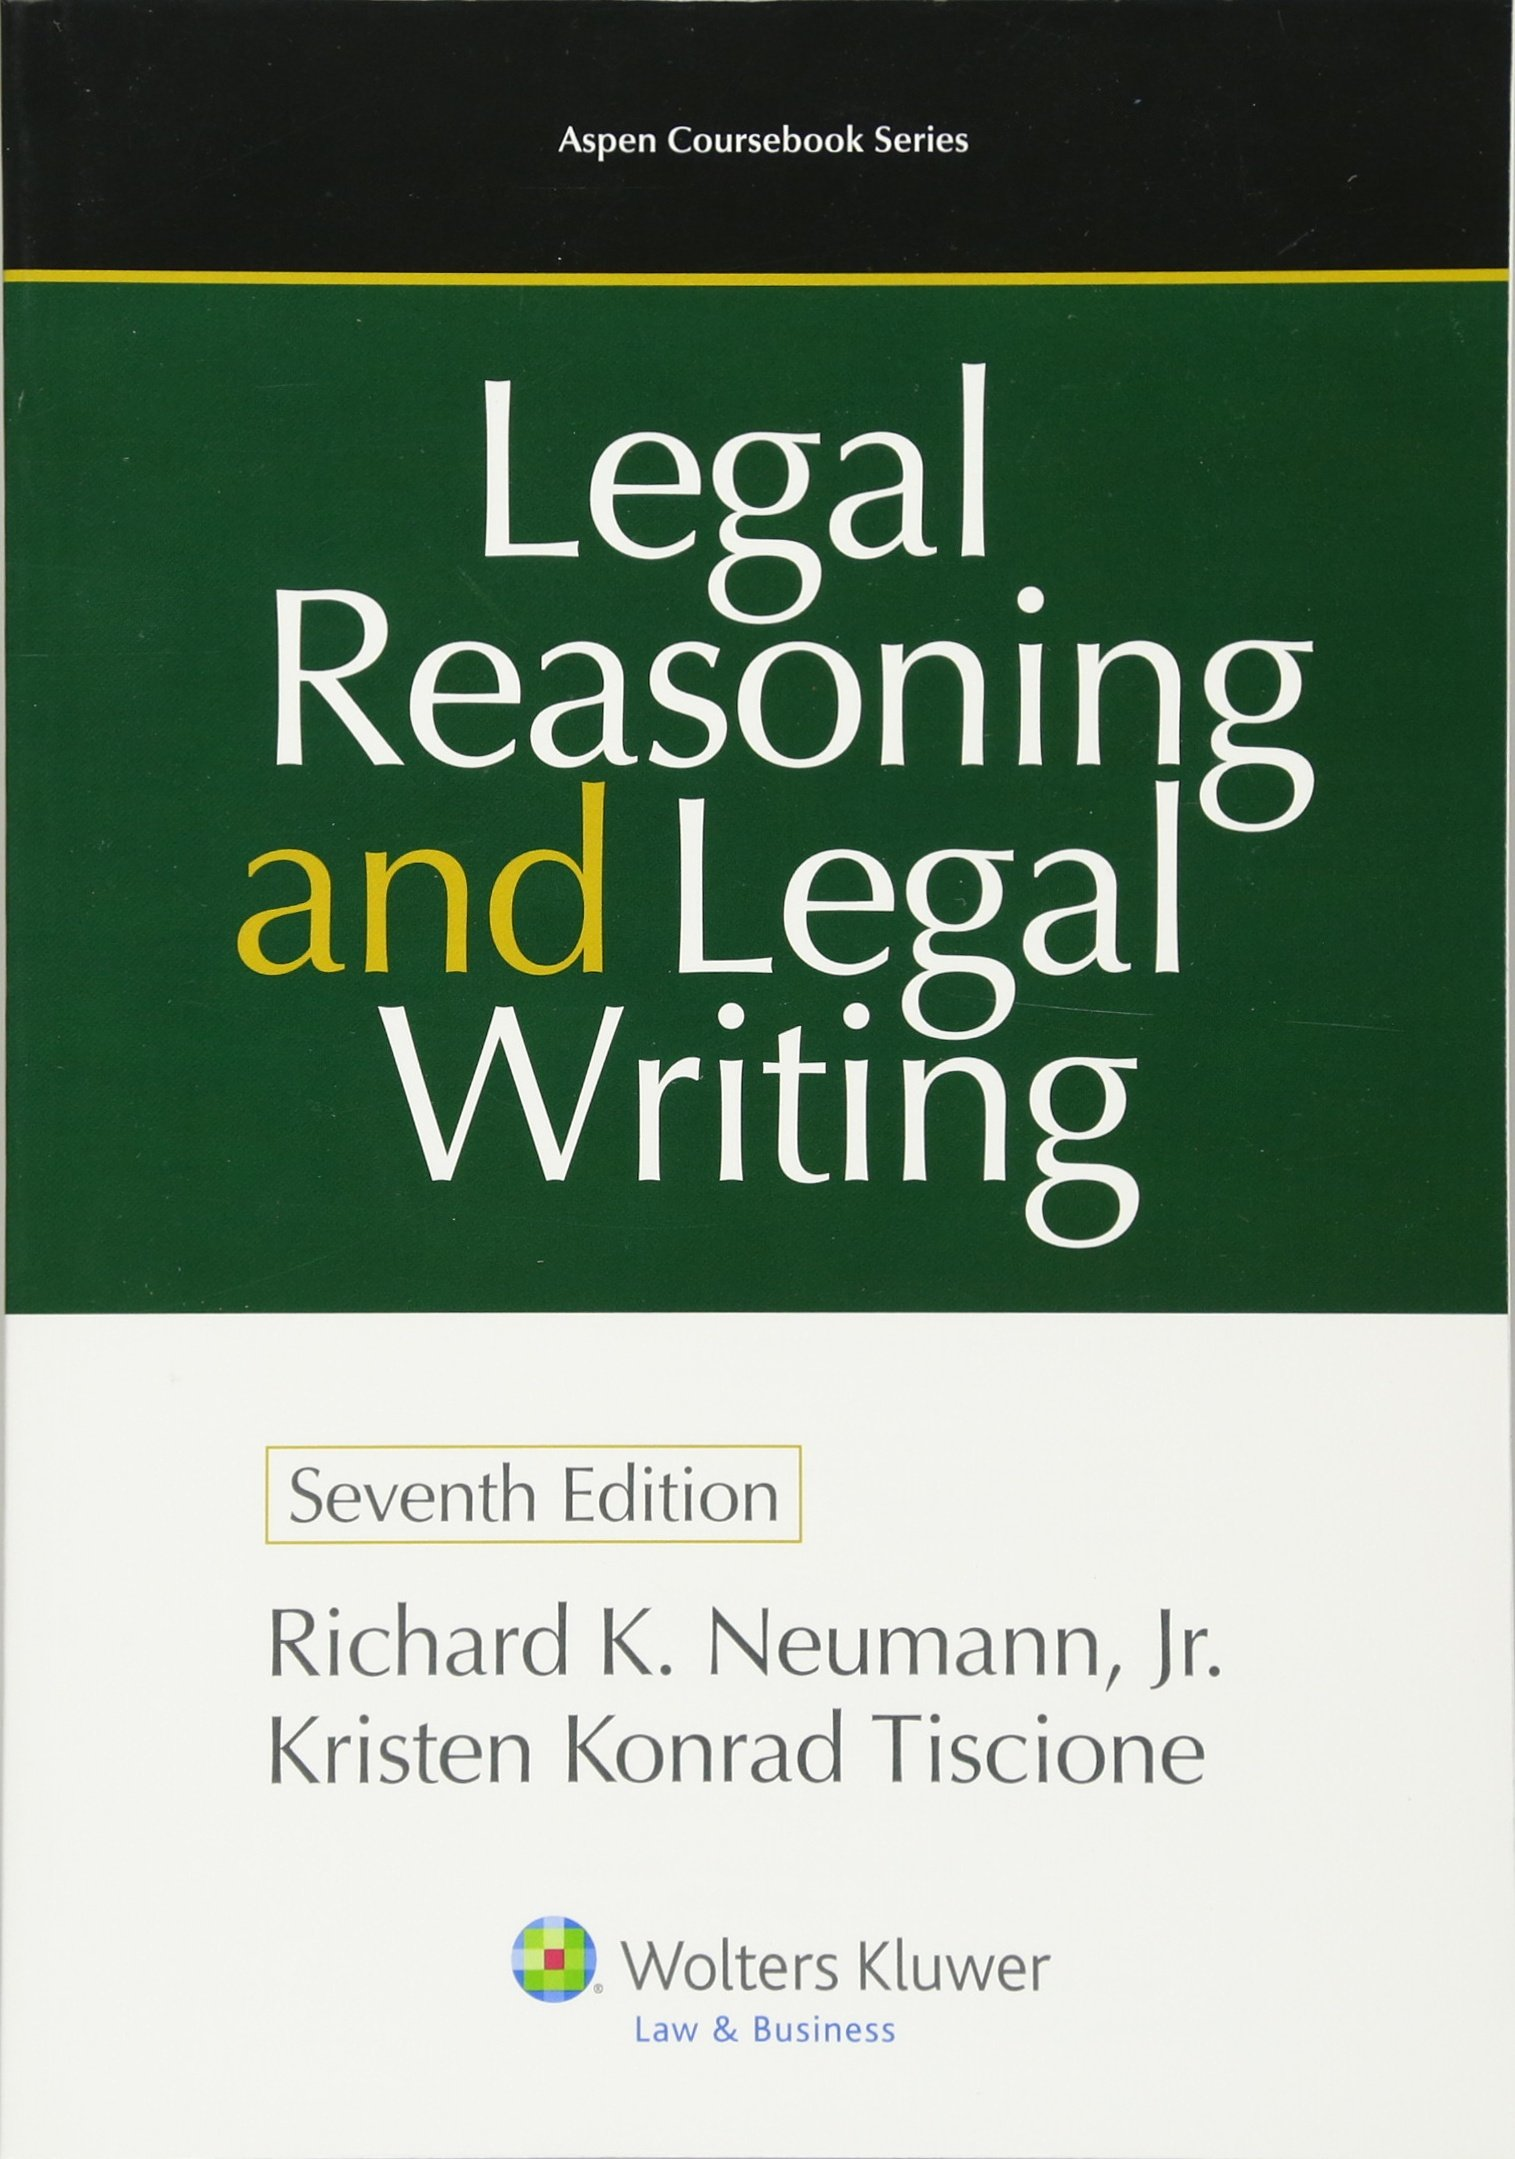 Legal Reasoning and Legal Writing: Structure, Strategy, and Style, Seventh Edition (Aspen Coursebook Series) by Aspen Publishers, Inc.